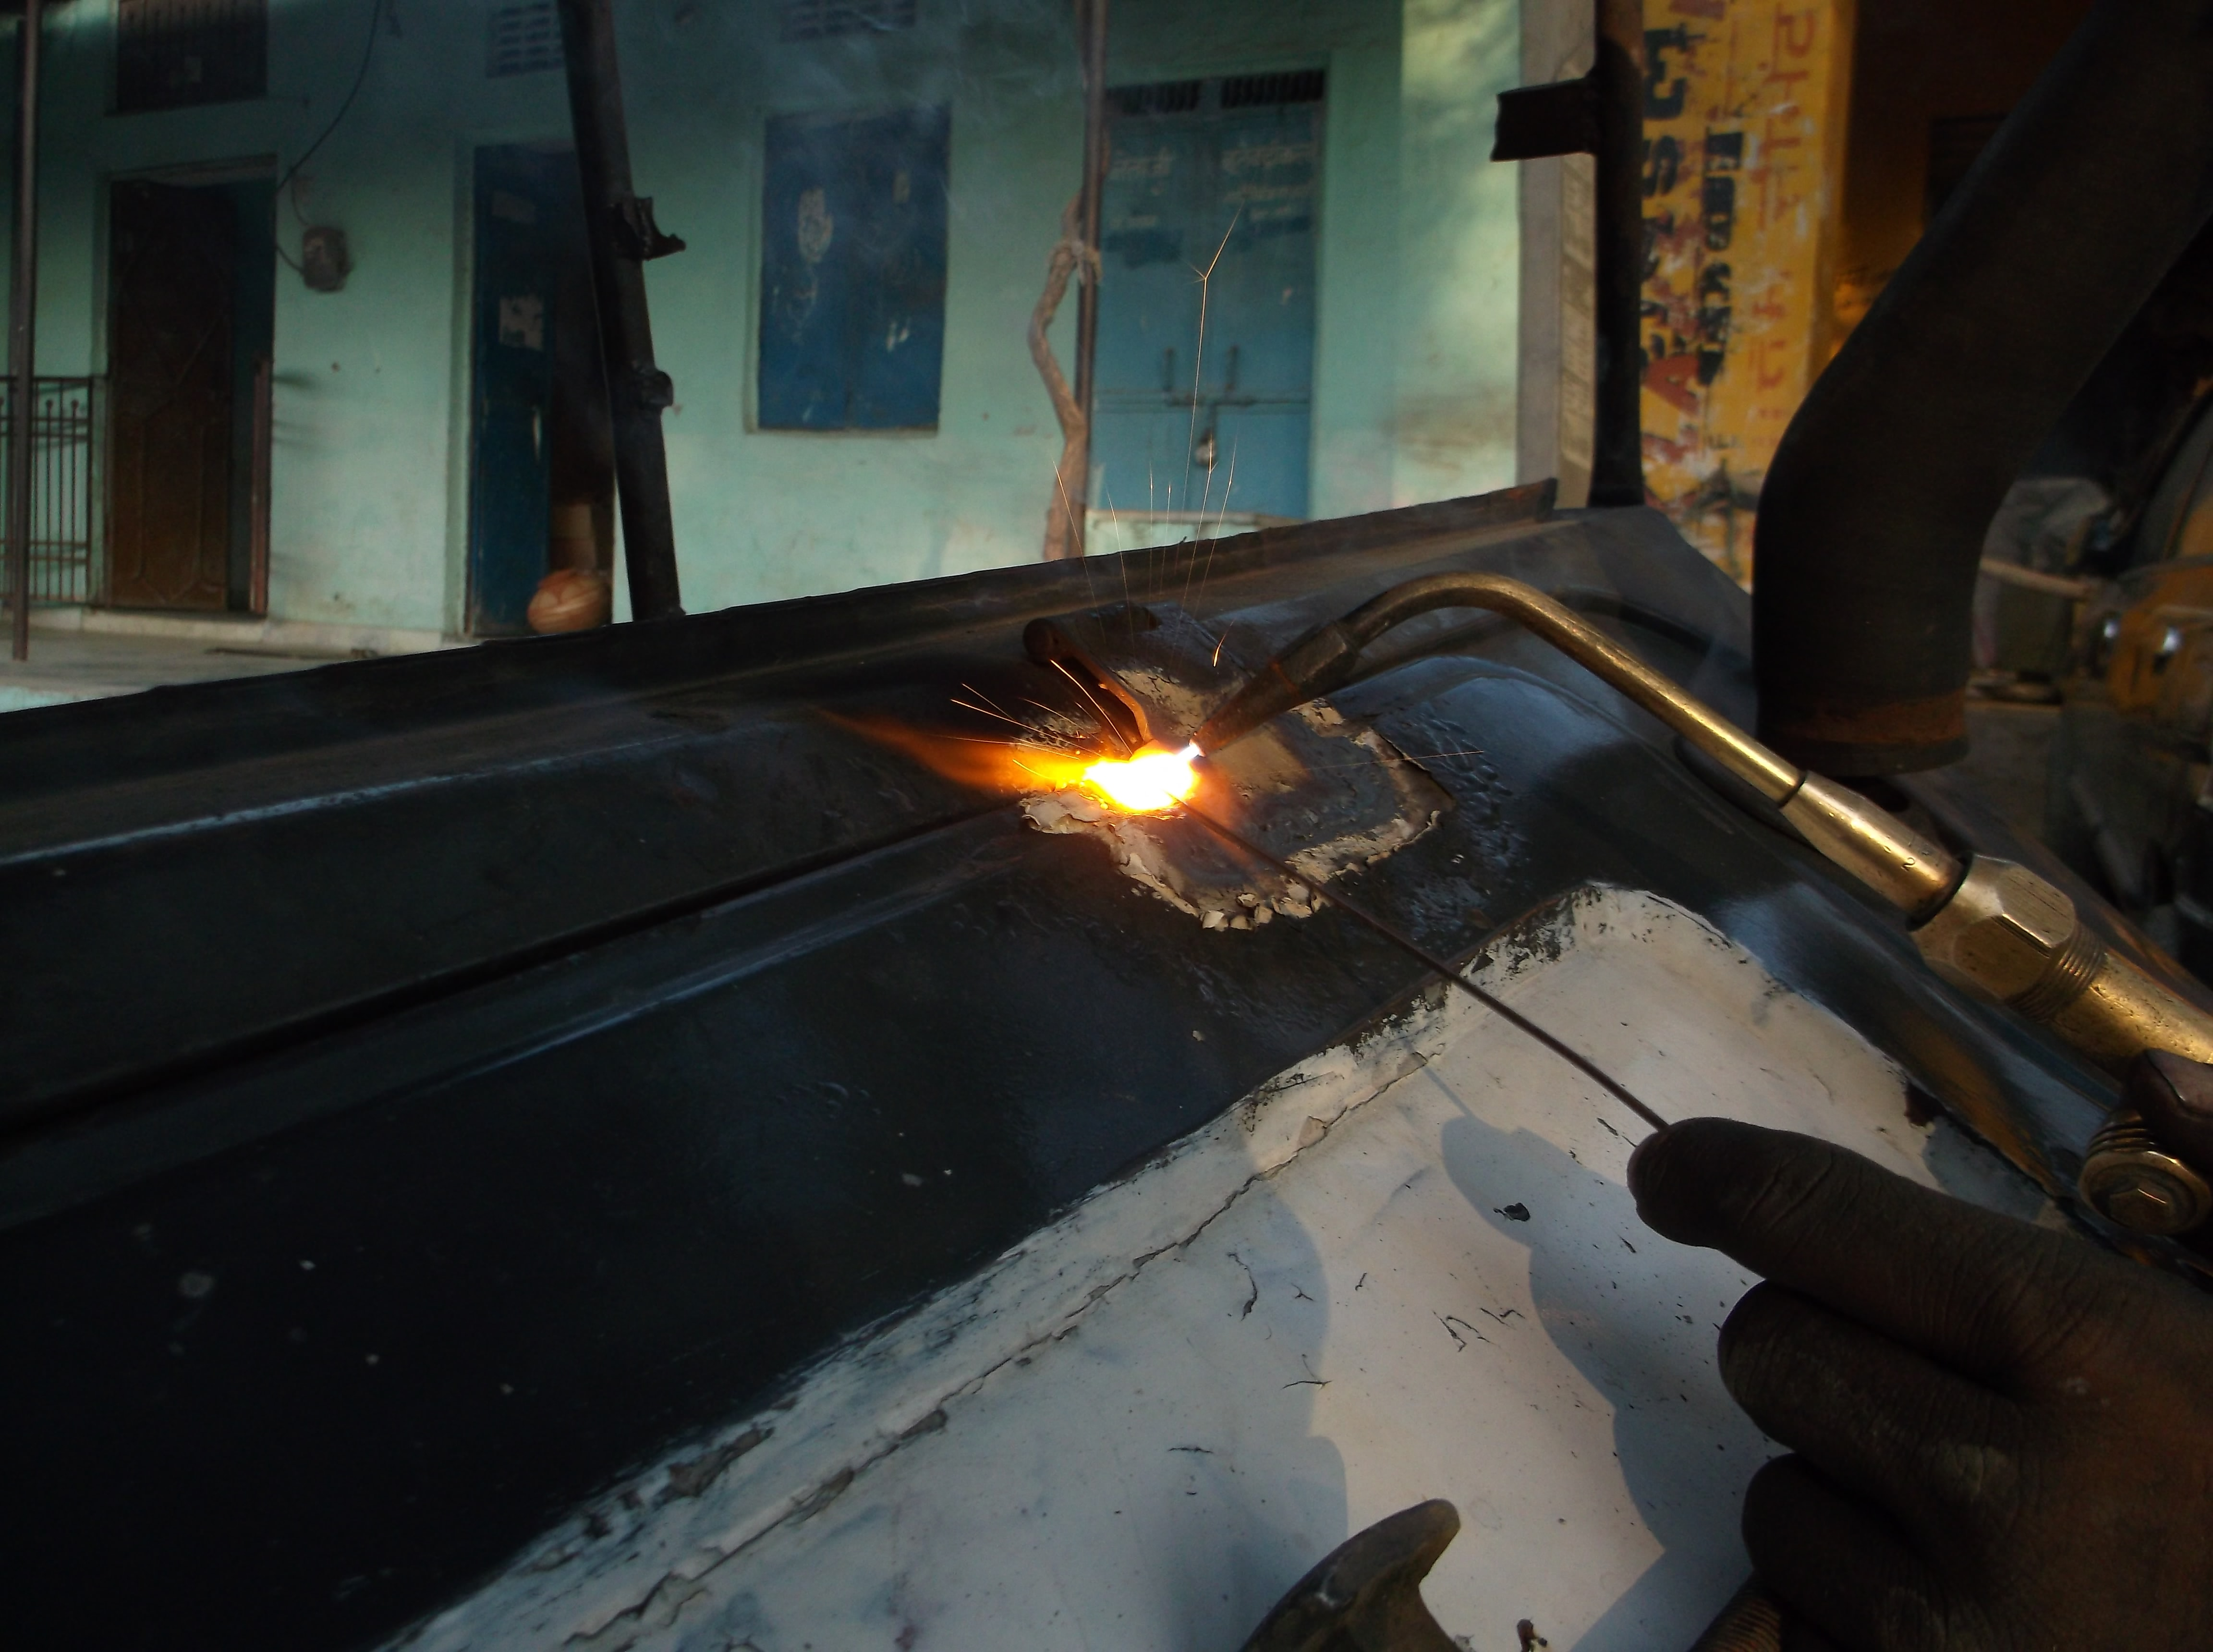 A person welding metal in a workshop